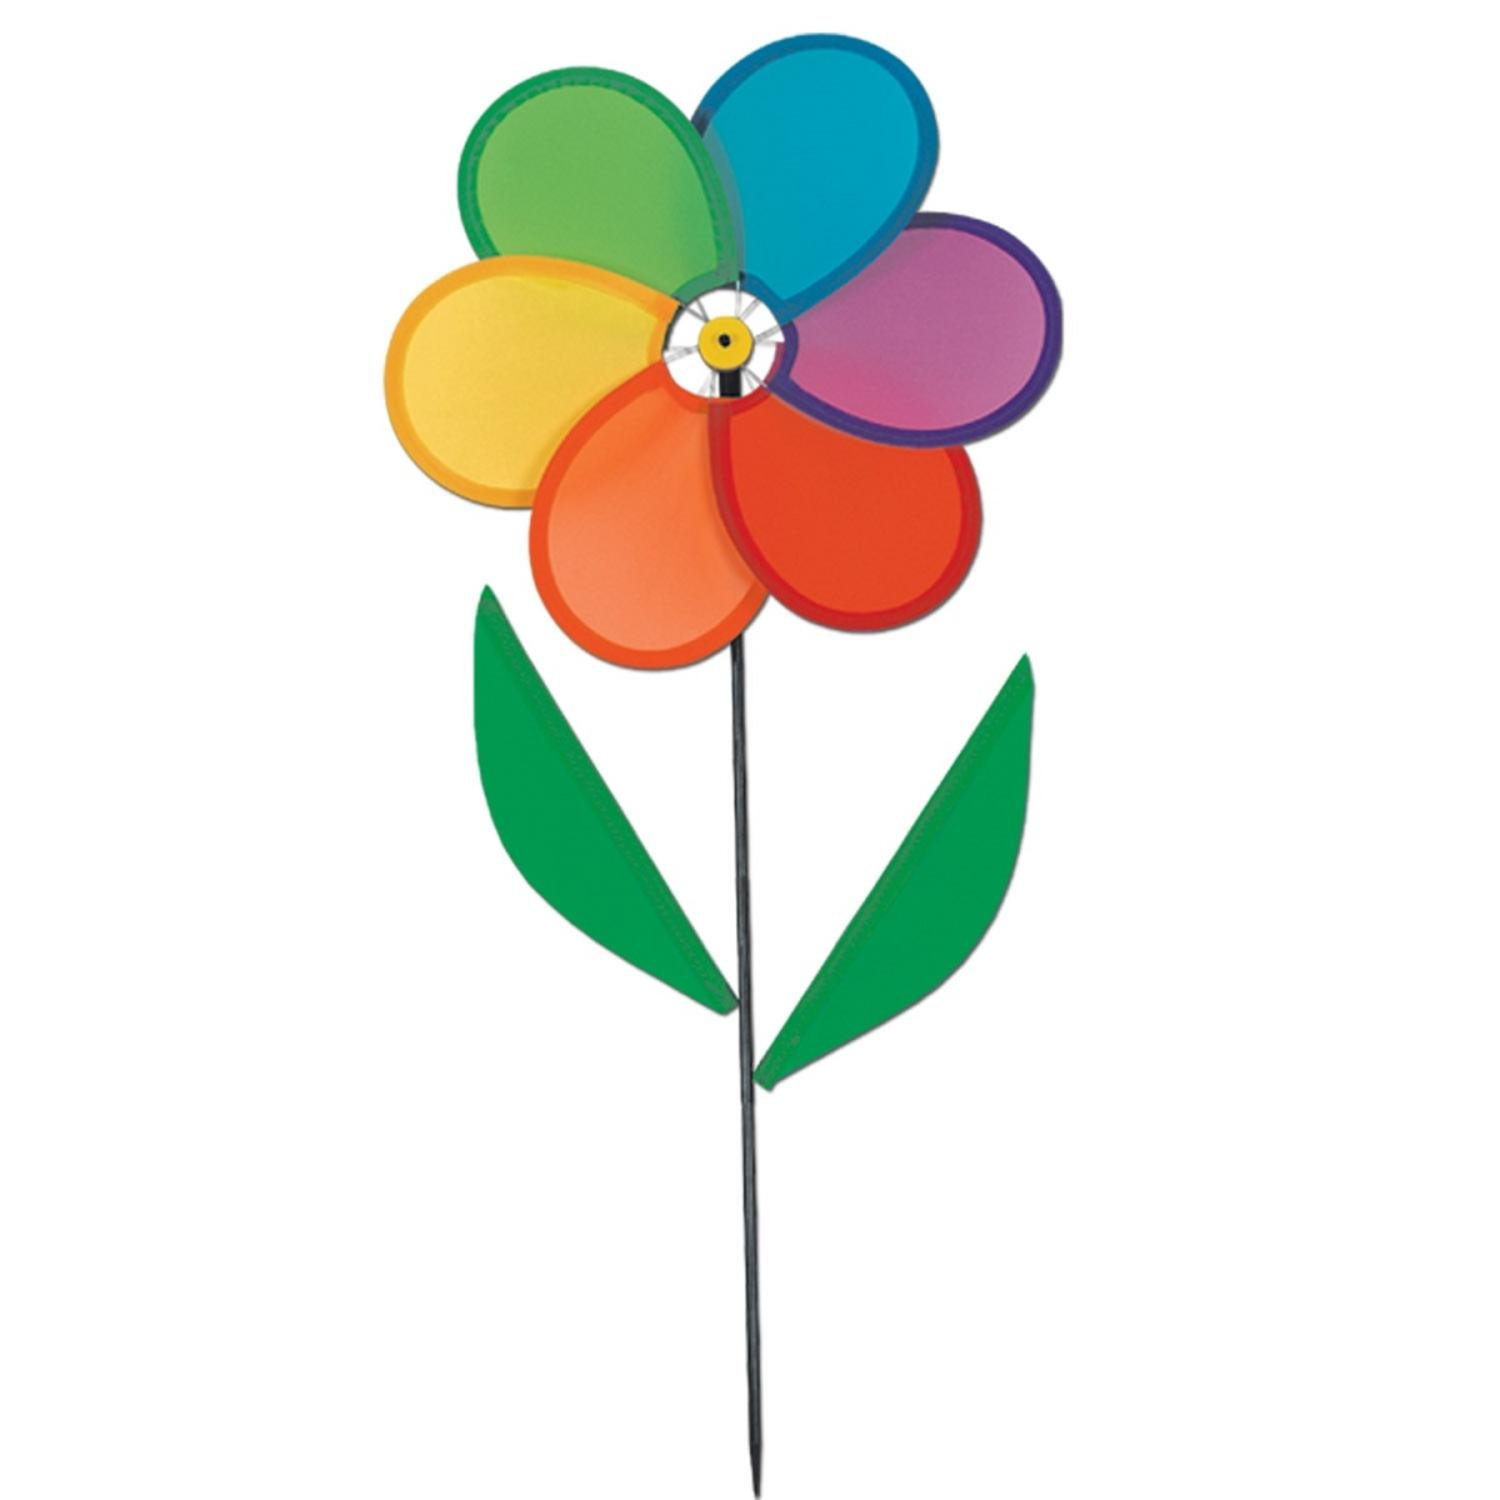 Pack of 6 Multi-Colored Power-Flower Wind-Wheel Yard Decorations 17''